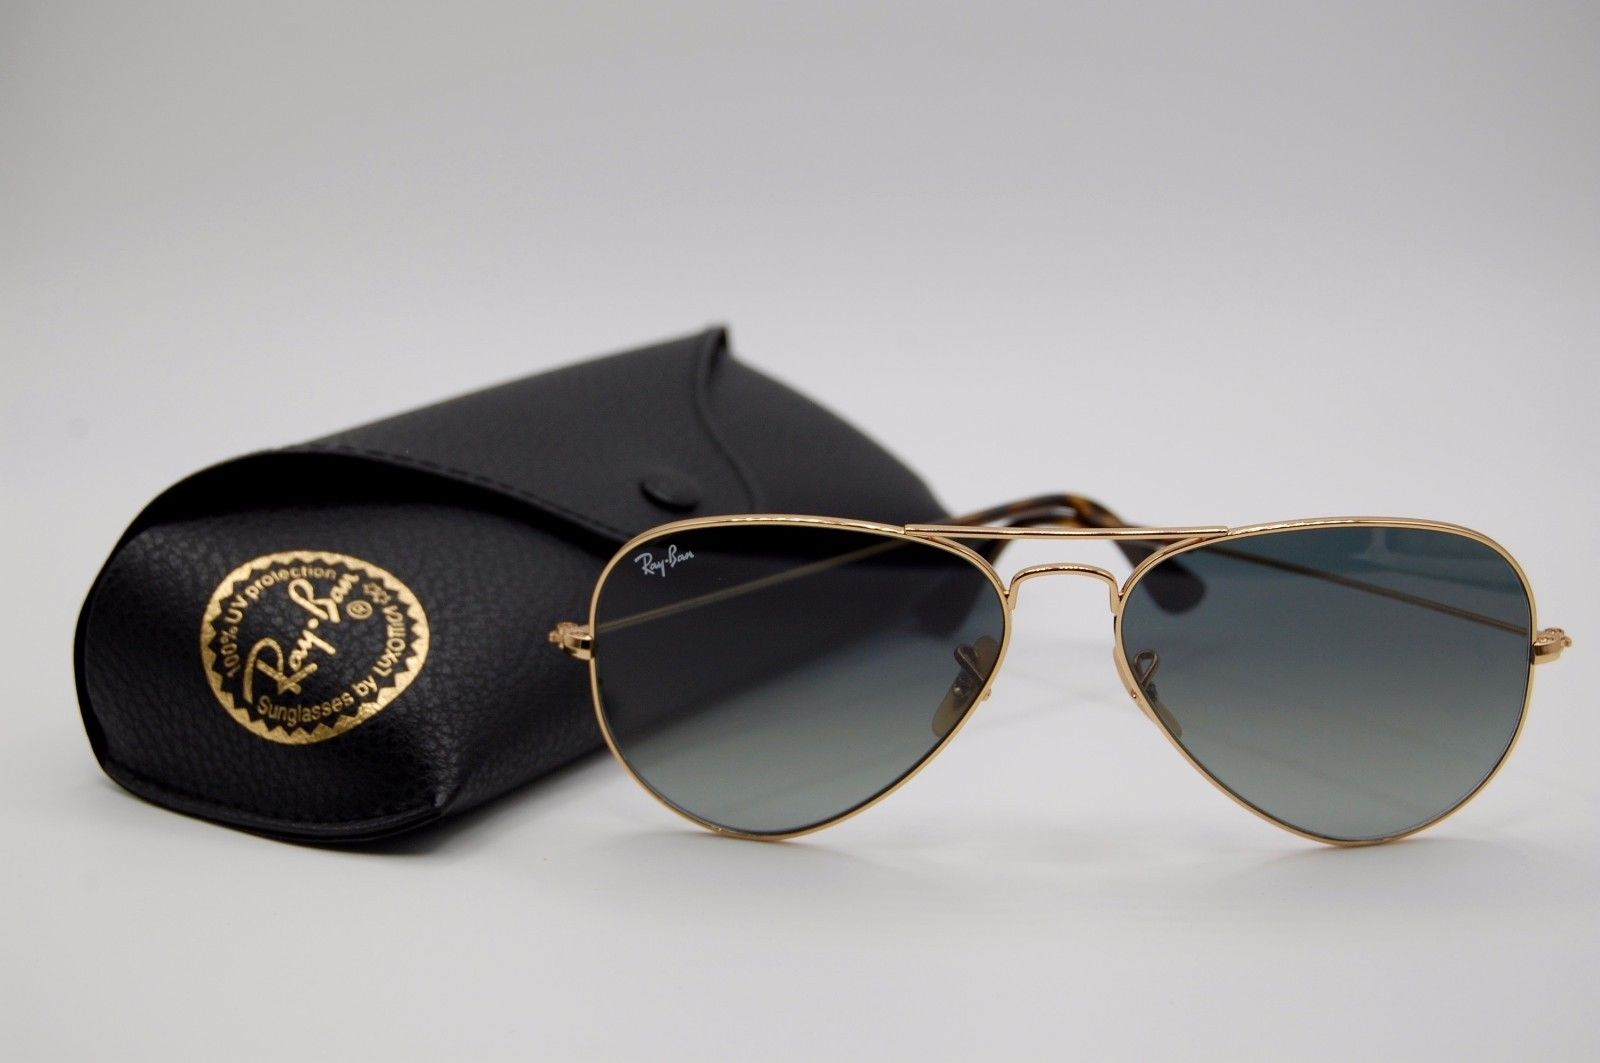 Ray Ban Aviator RB3025 181/71 Gold Grey Gradient 58mm